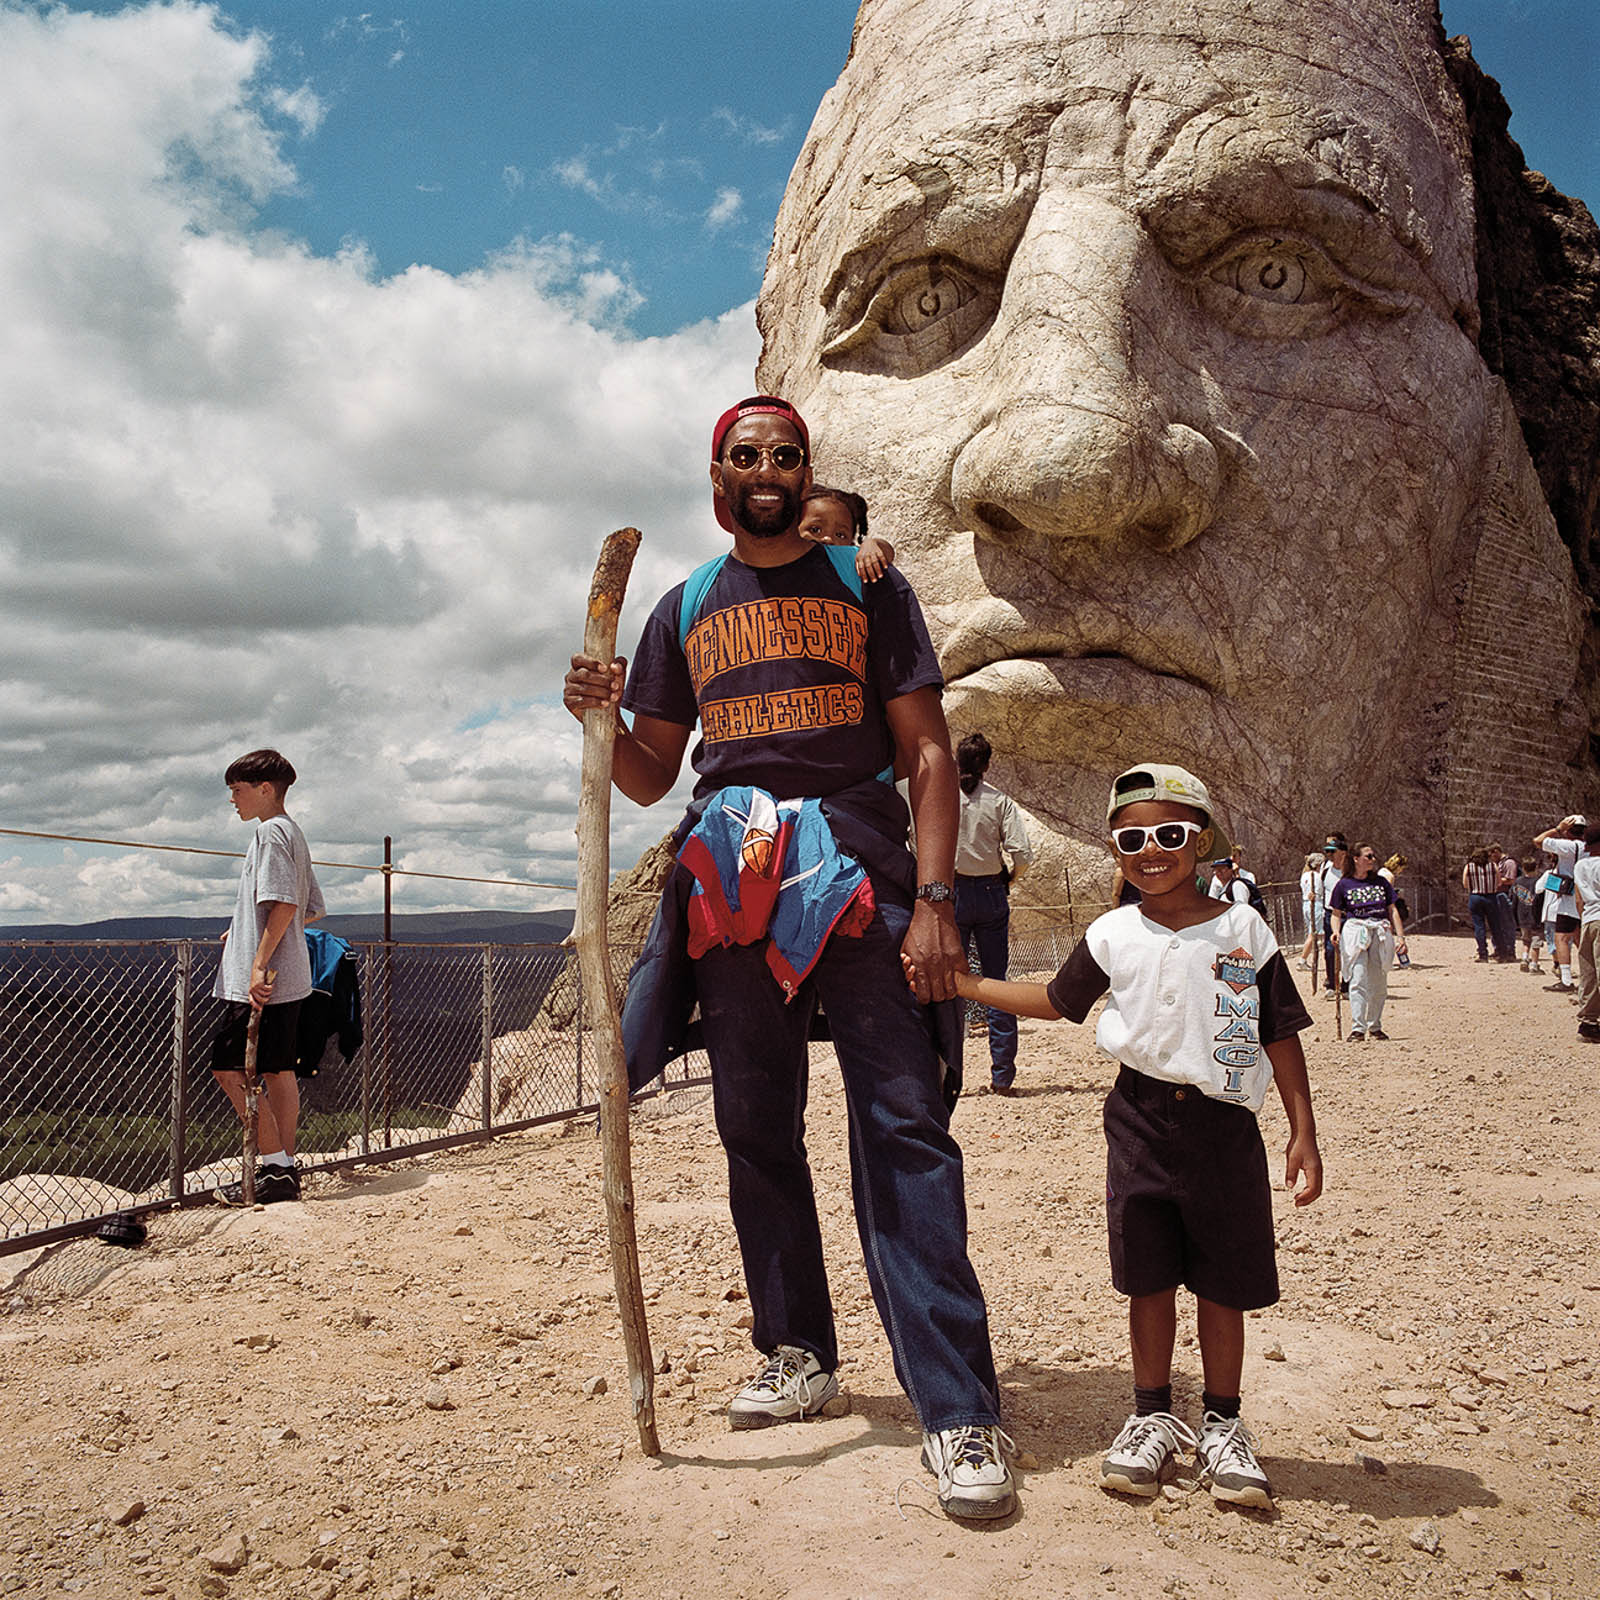 Father & Son at Crazy Horse Monument, South Dakota 1999